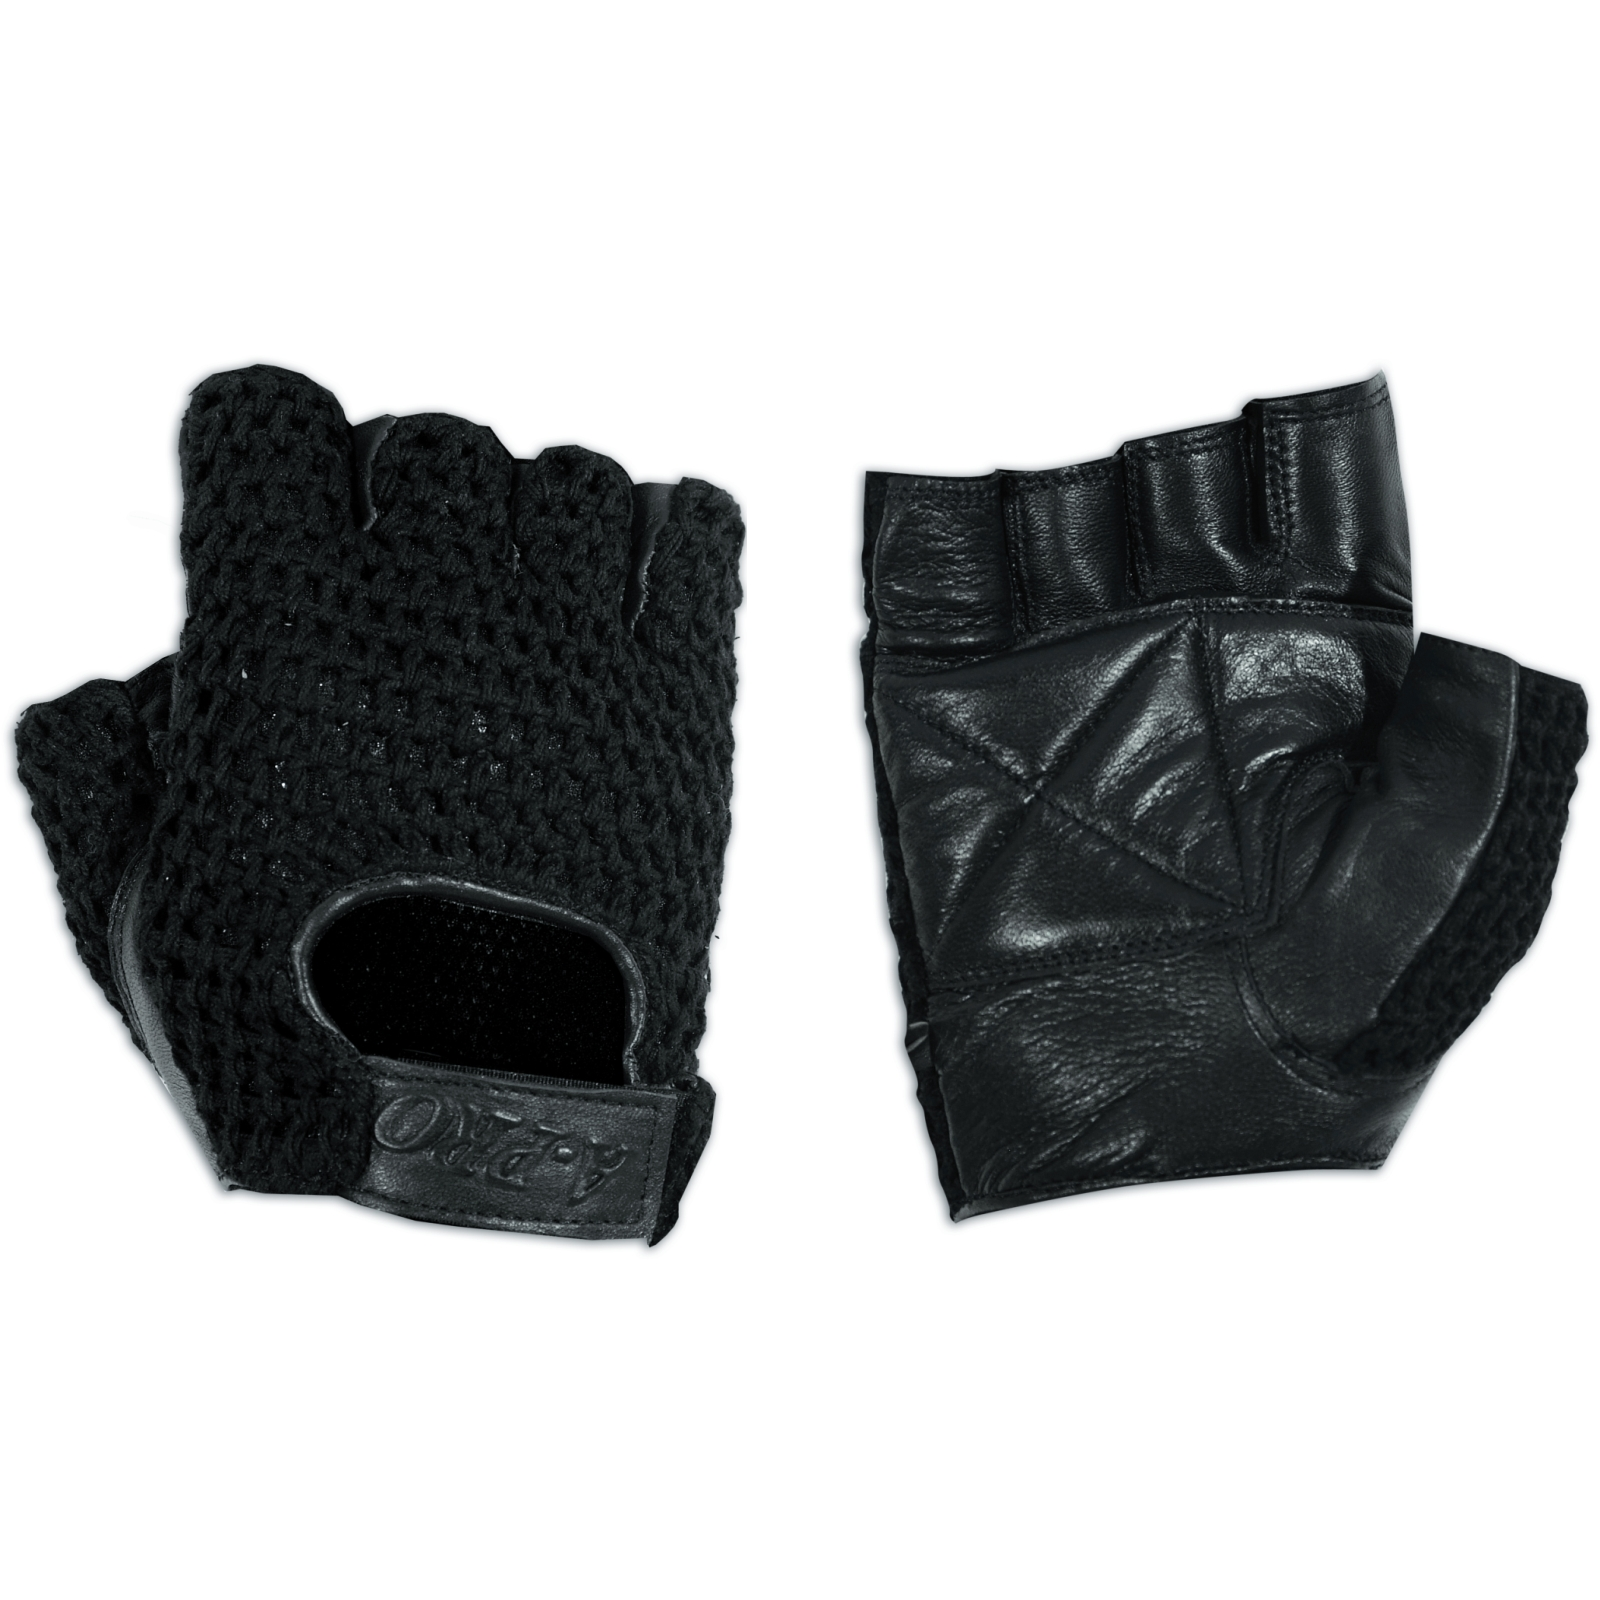 Fingerless Biker Gloves Soft Net leather Cowhide Apparel ...